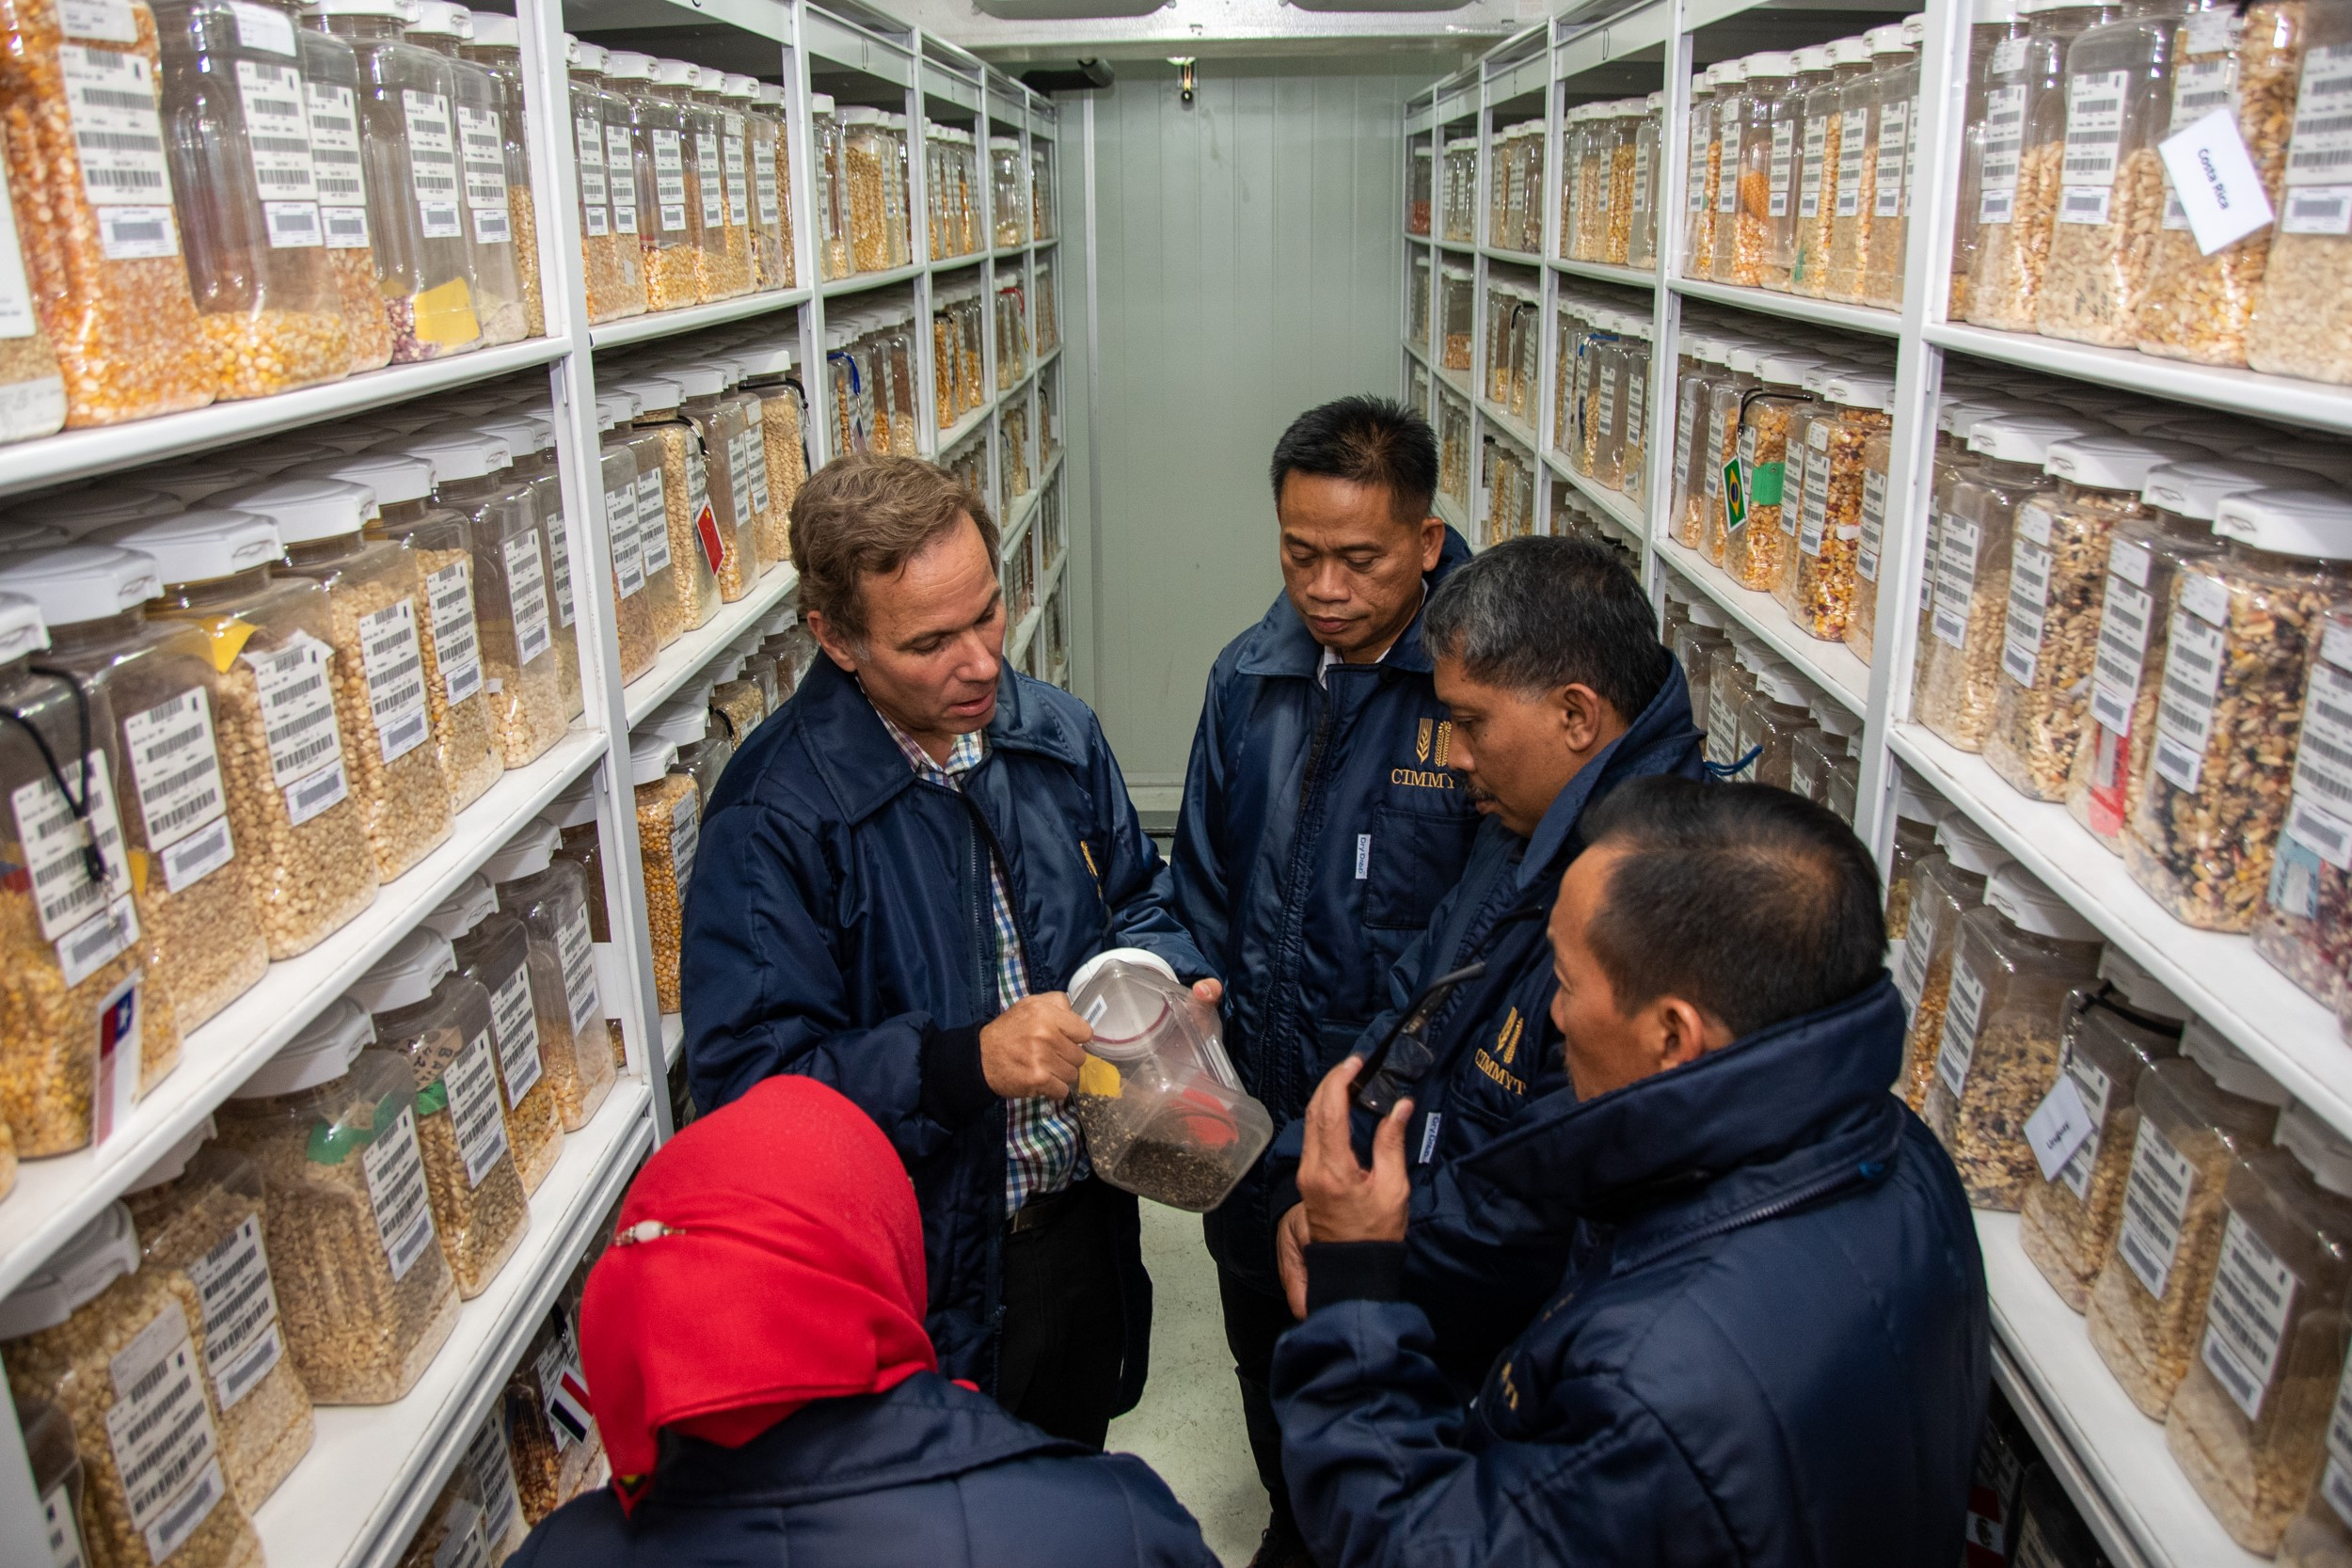 The Indonesian delegation visited CIMMYT's germplasm bank. (Photo: Alfonso Cortés/CIMMYT)